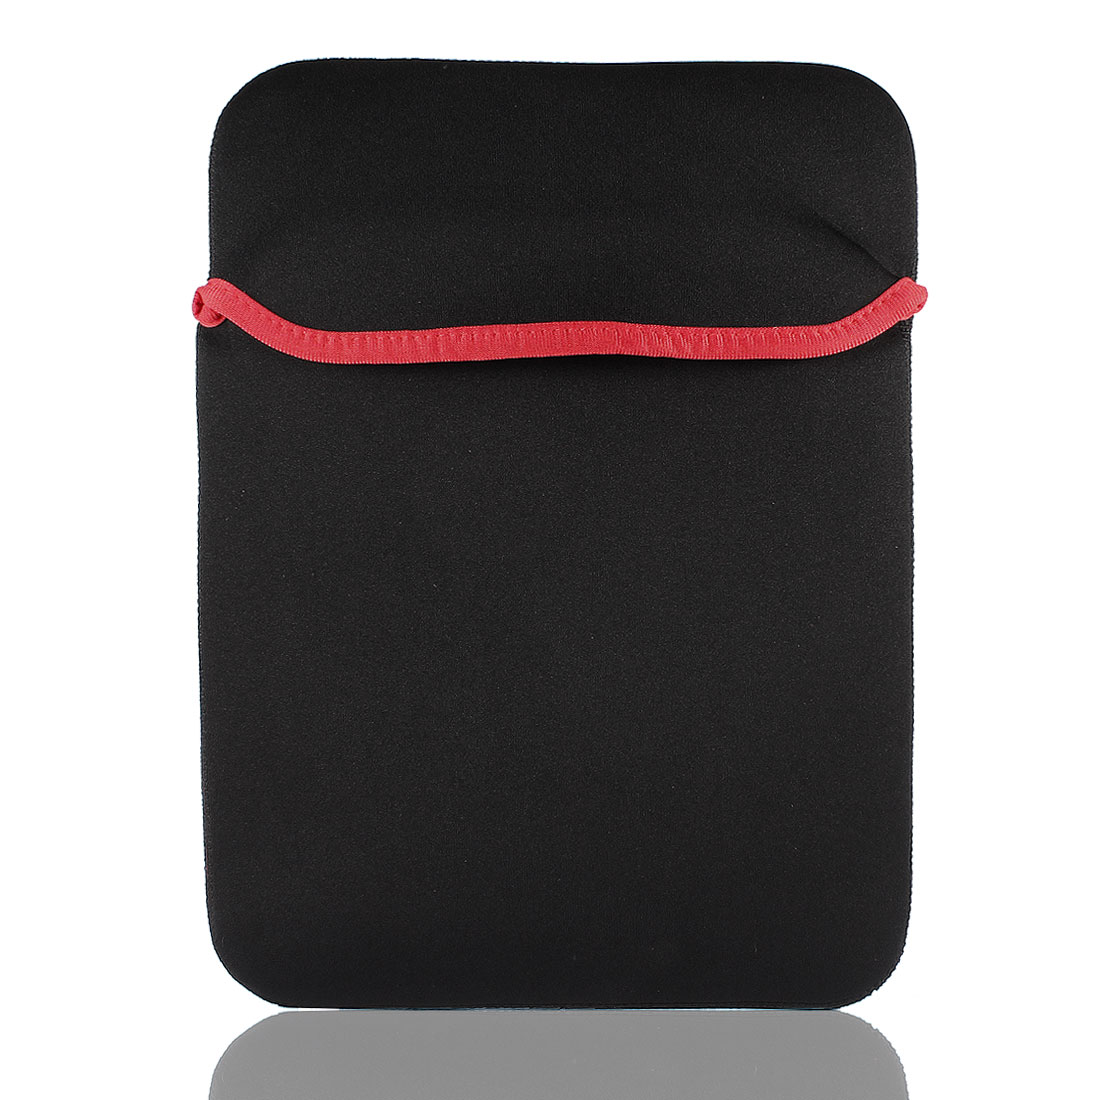 "13"" 13.3"" Black Neoprene Laptop Sleeve Bag Case for Macbook Pro/Air"